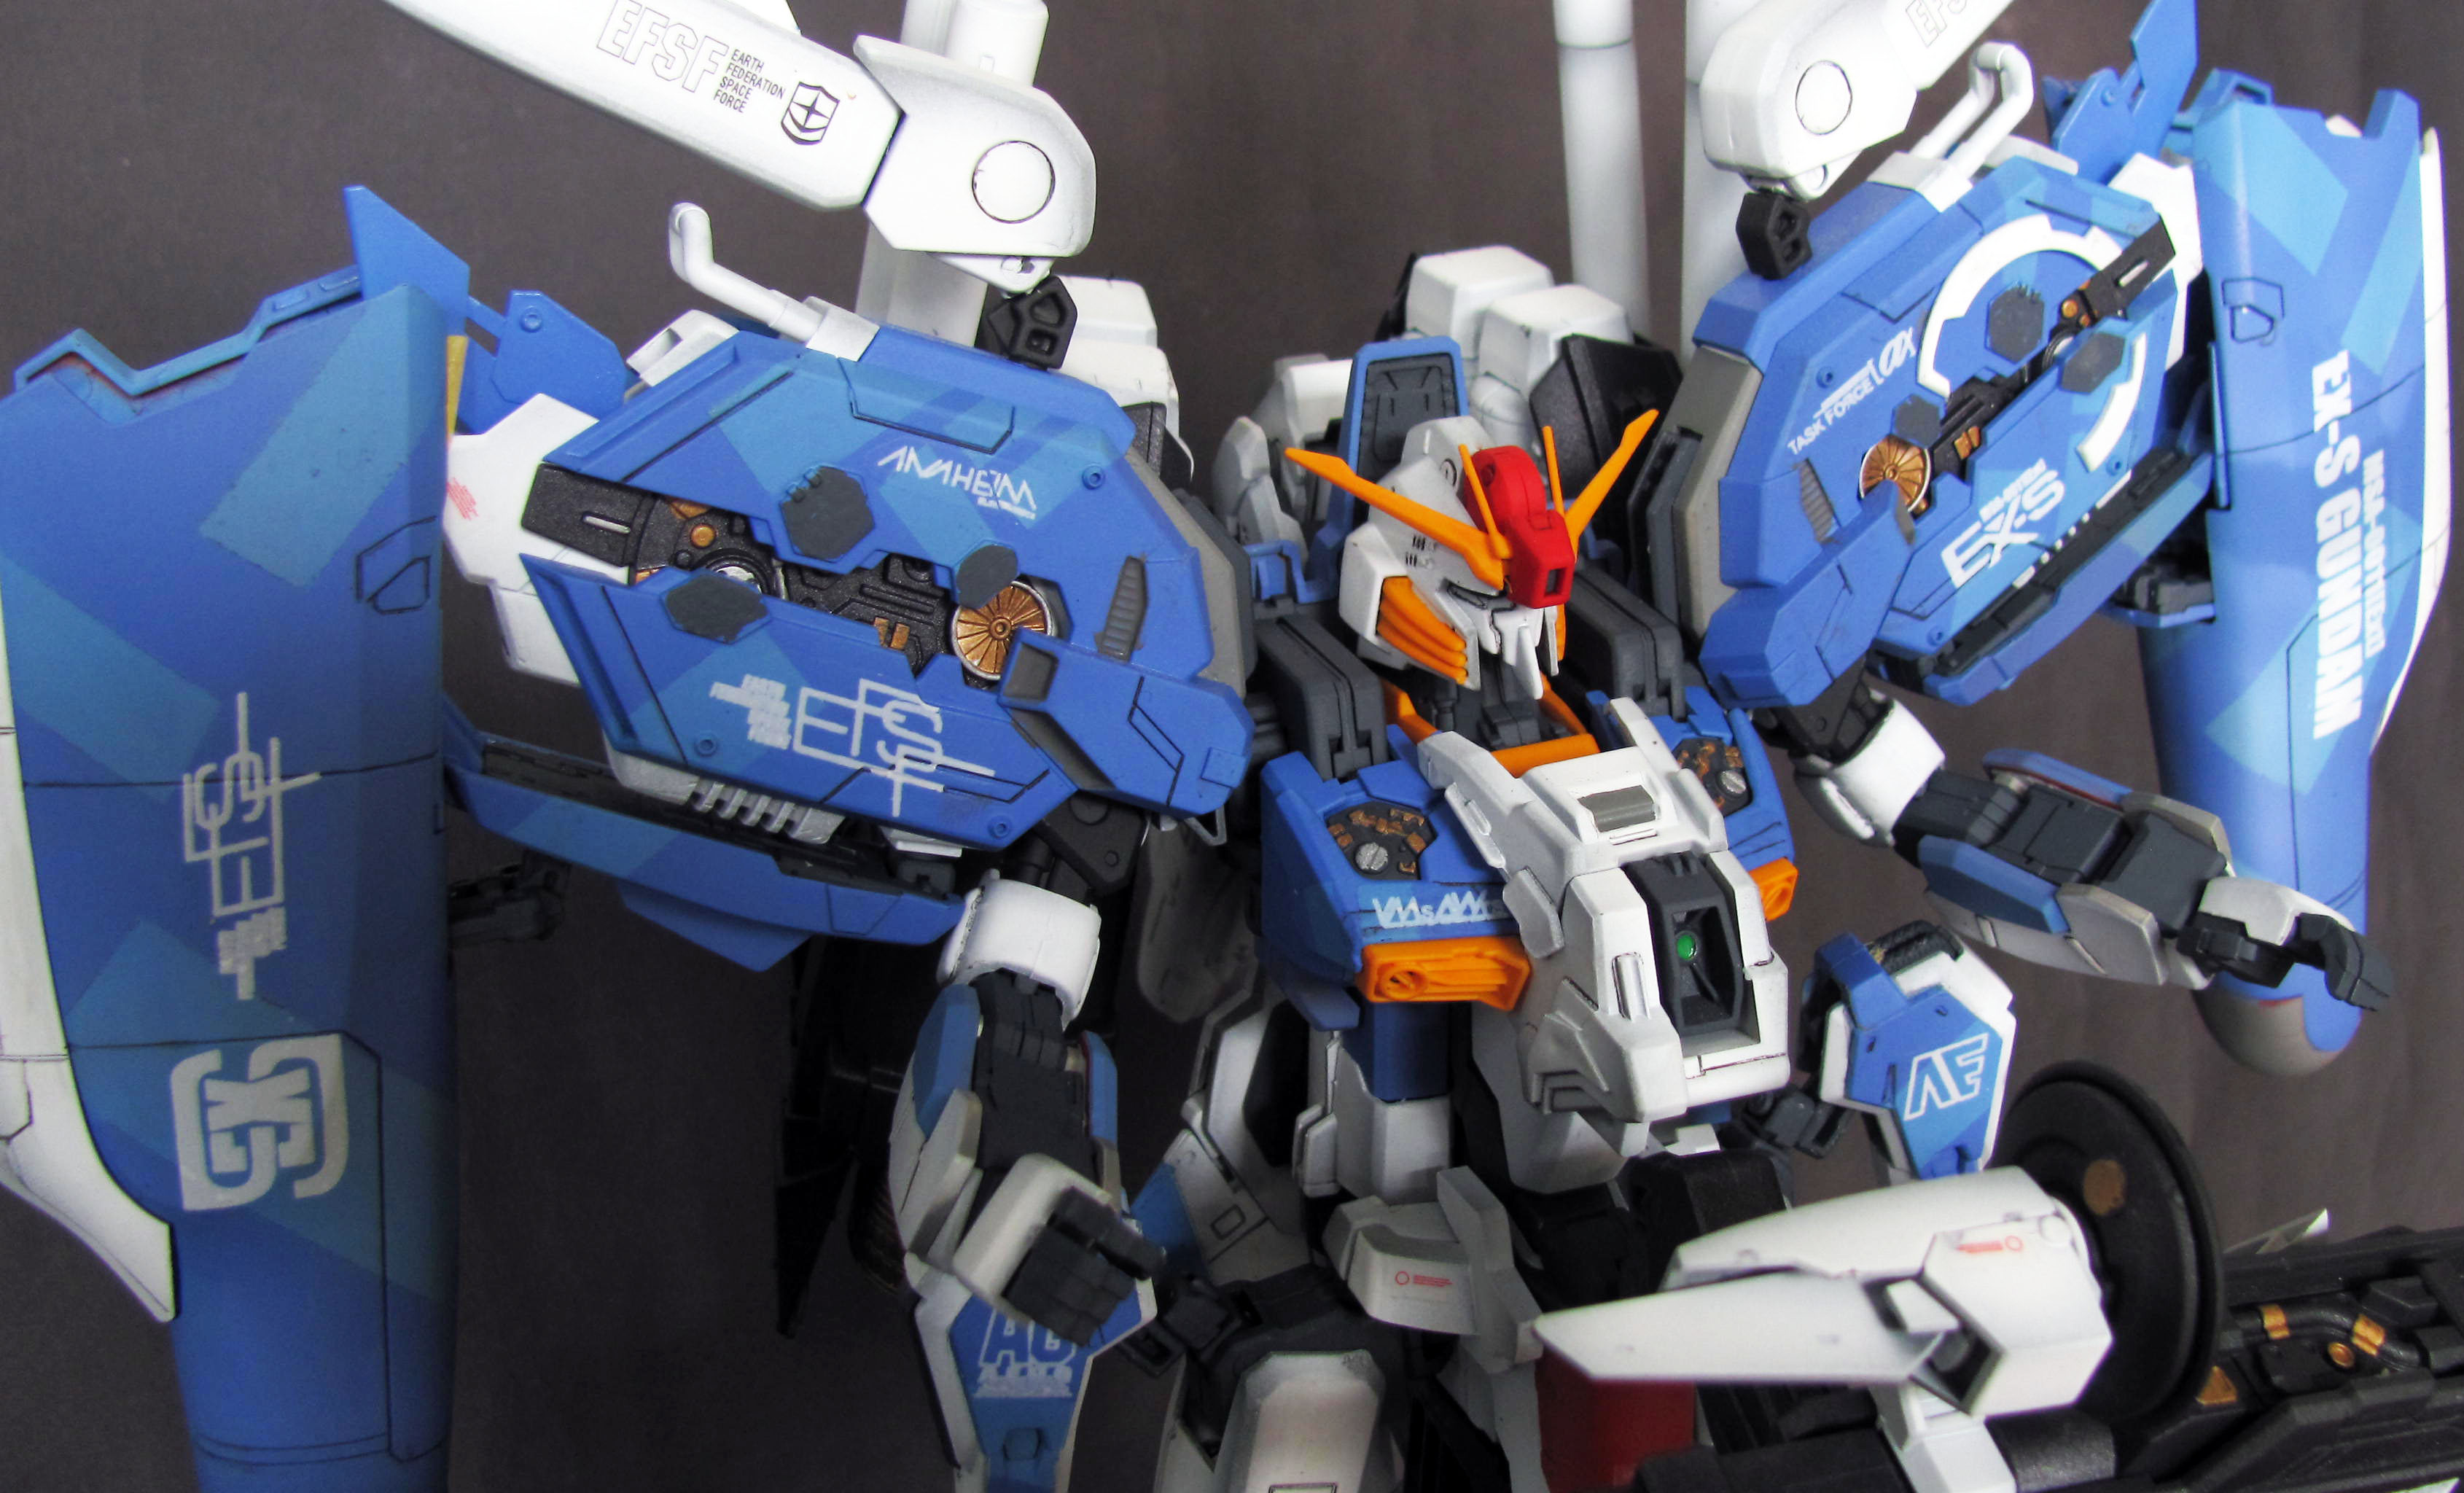 Mg 1 100 Ex S Gundam Improved Modeled By Oni Wicaksono Photoreview Wallpaper Size Images Info Gunjap